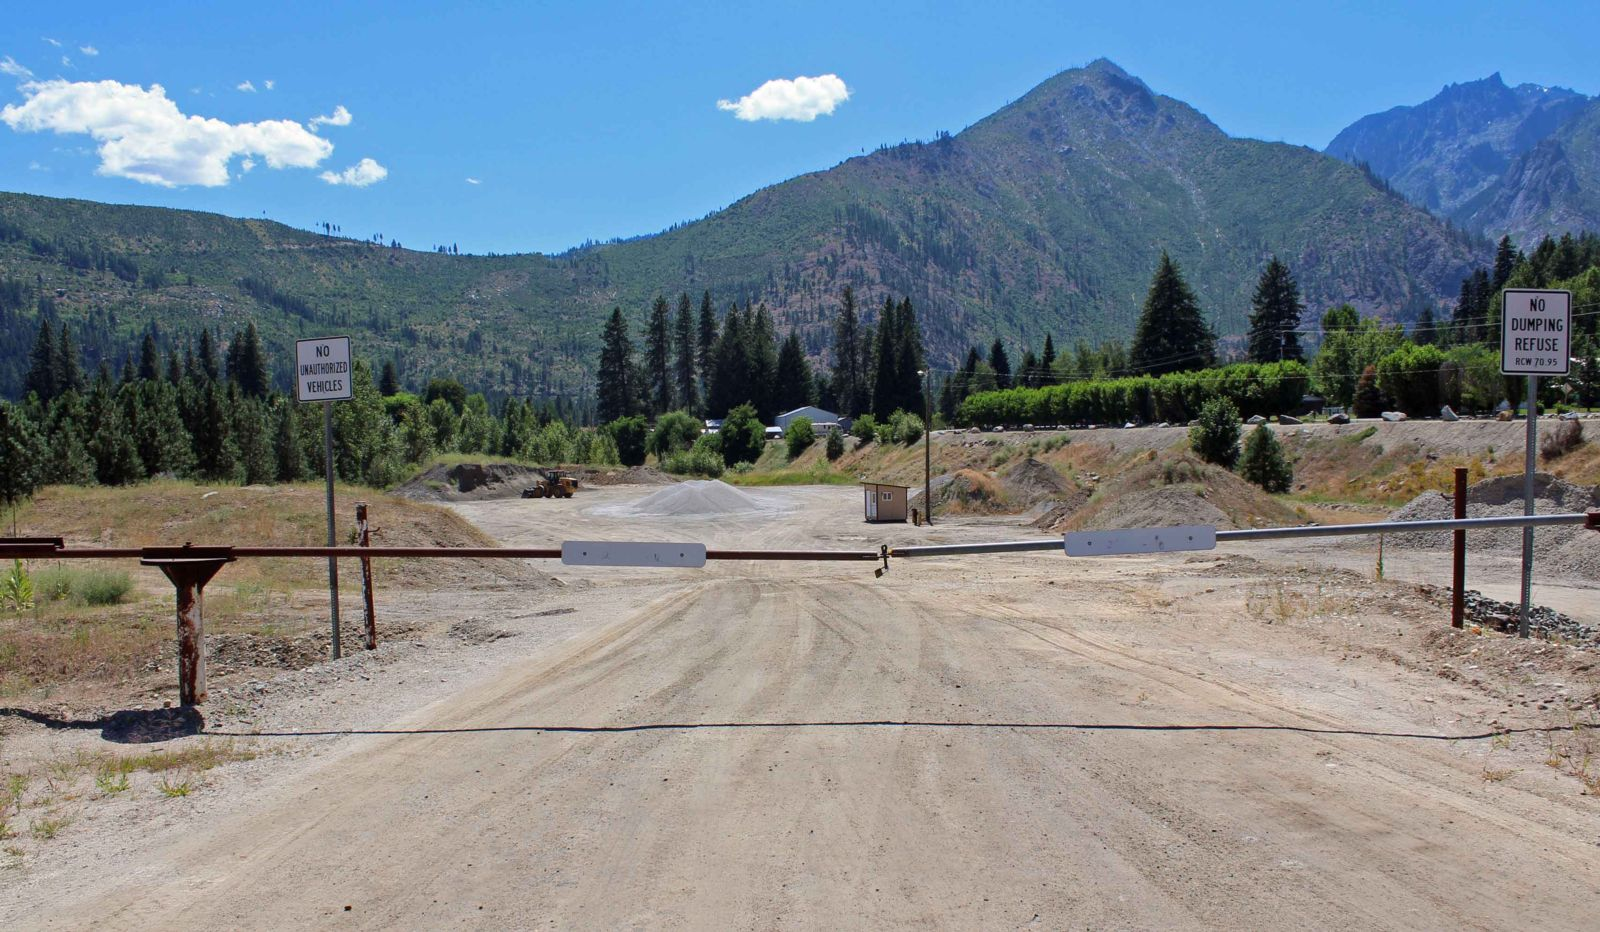 New flat fee starts May 1 at Leavenworth brush site